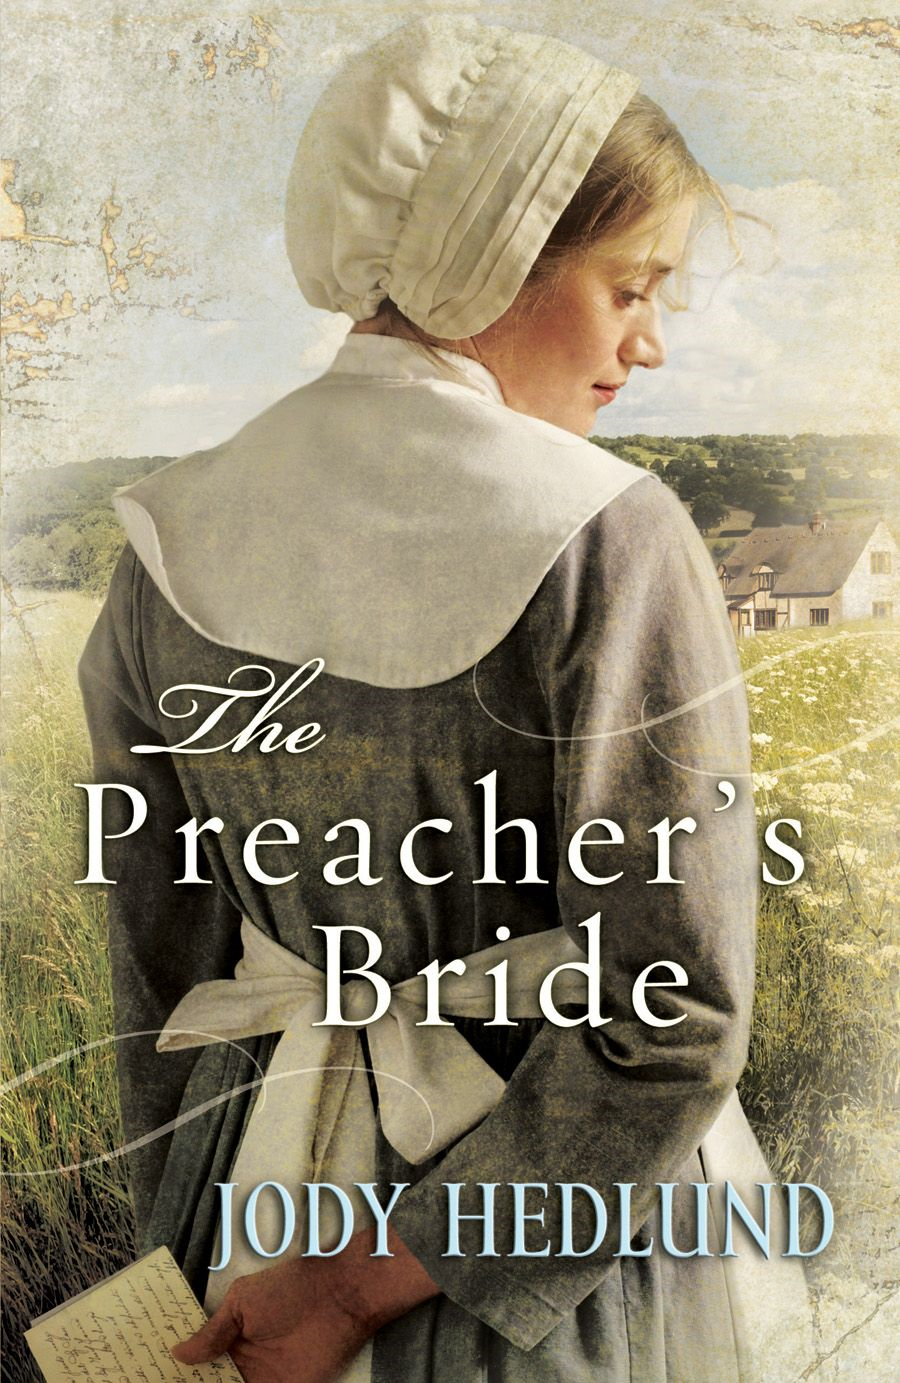 Preacher's Bride  The By Jody Hedlund